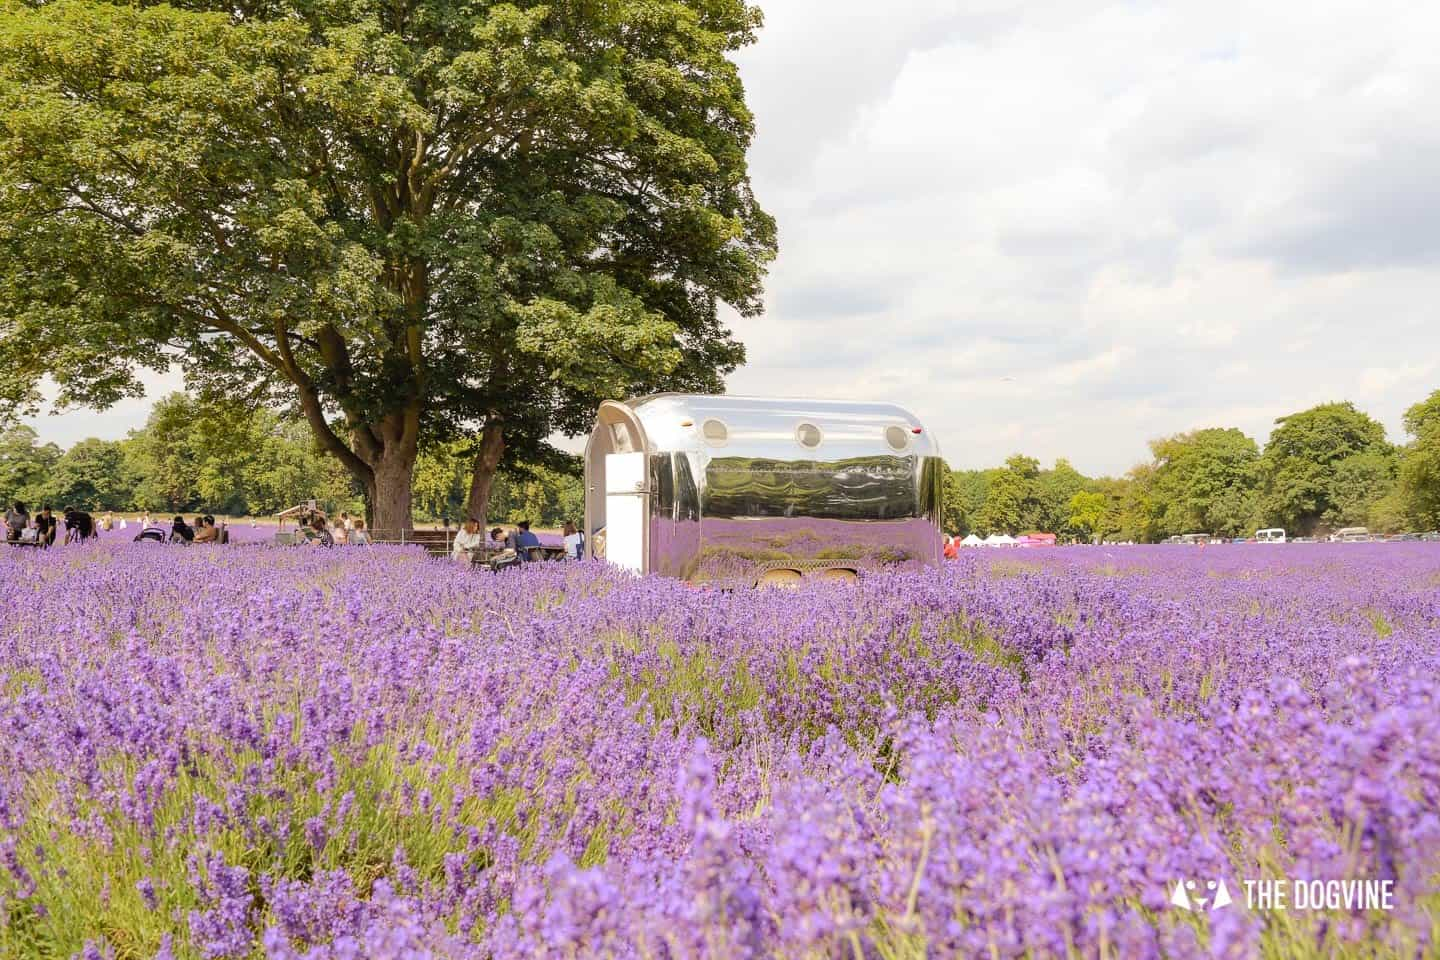 Dog-friendly Mayfield Lavender Farm - The Airstream Café